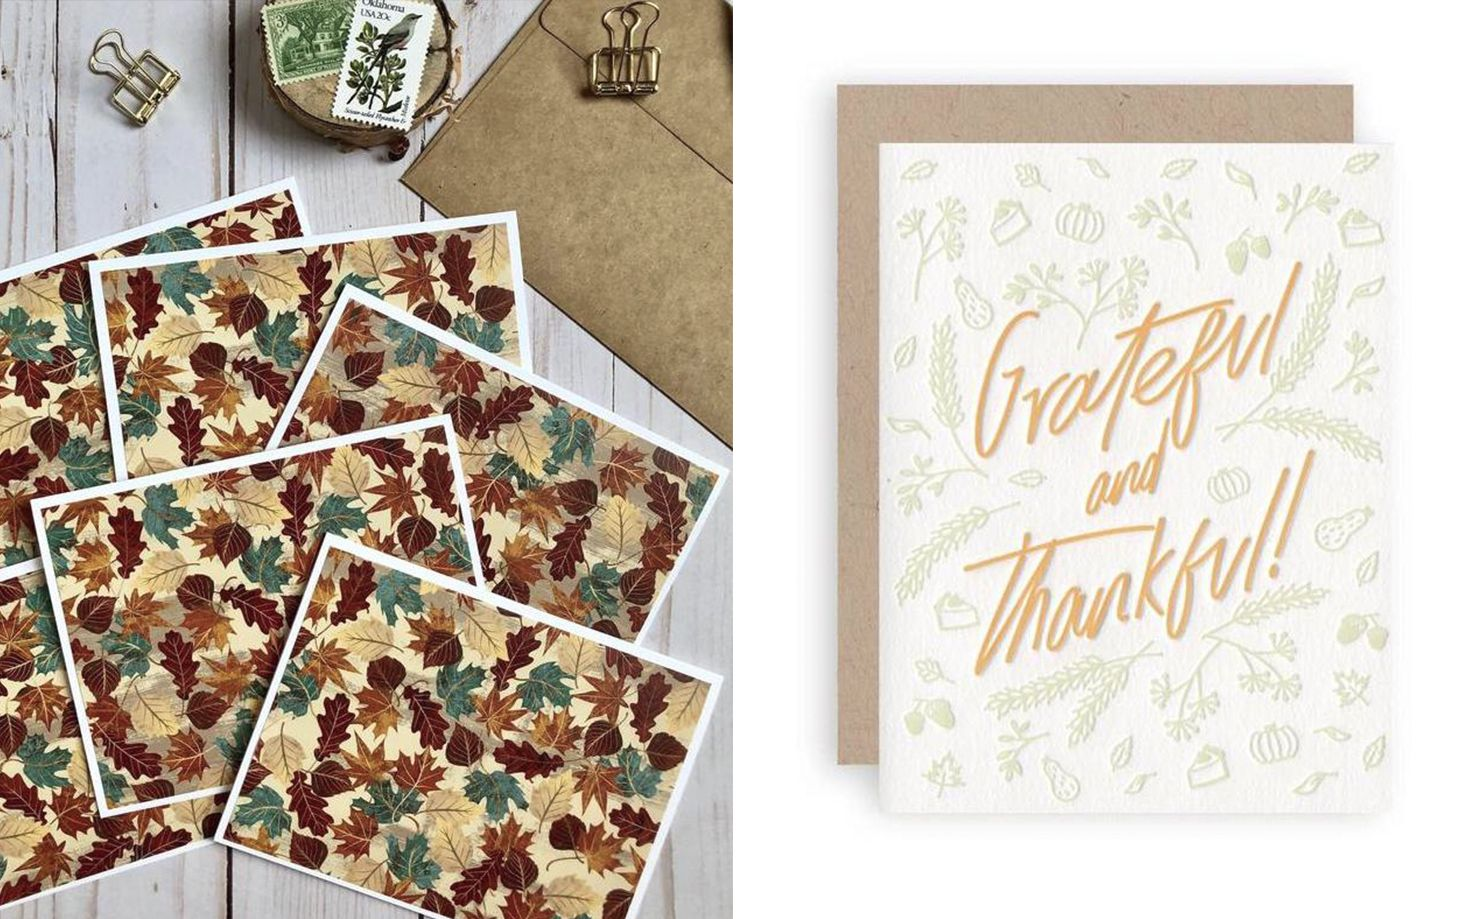 35 Thoughtful Thanksgiving Cards Stylish Thanksgiving Card Ideas